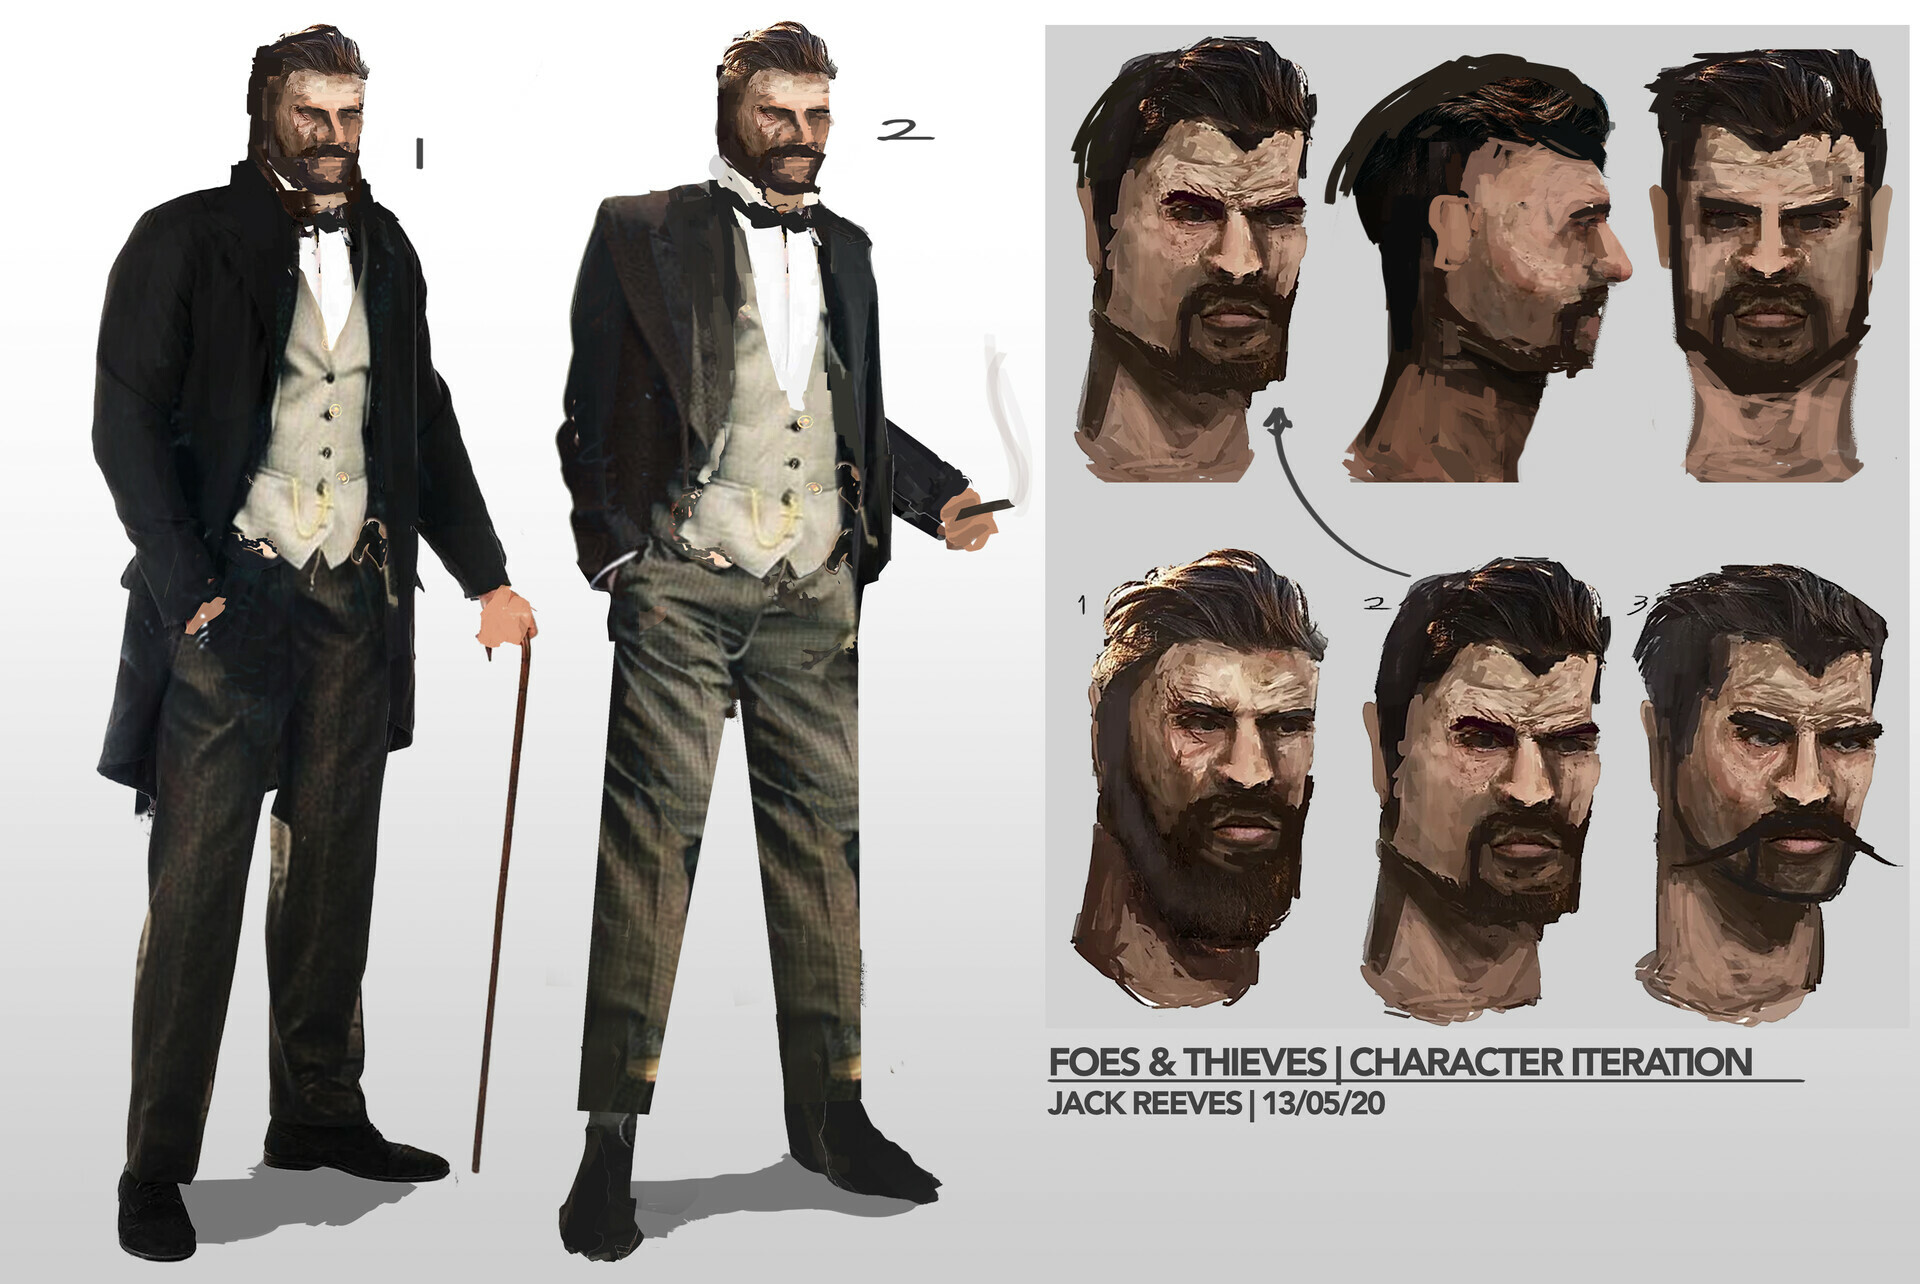 Foes & Thieves Character Design